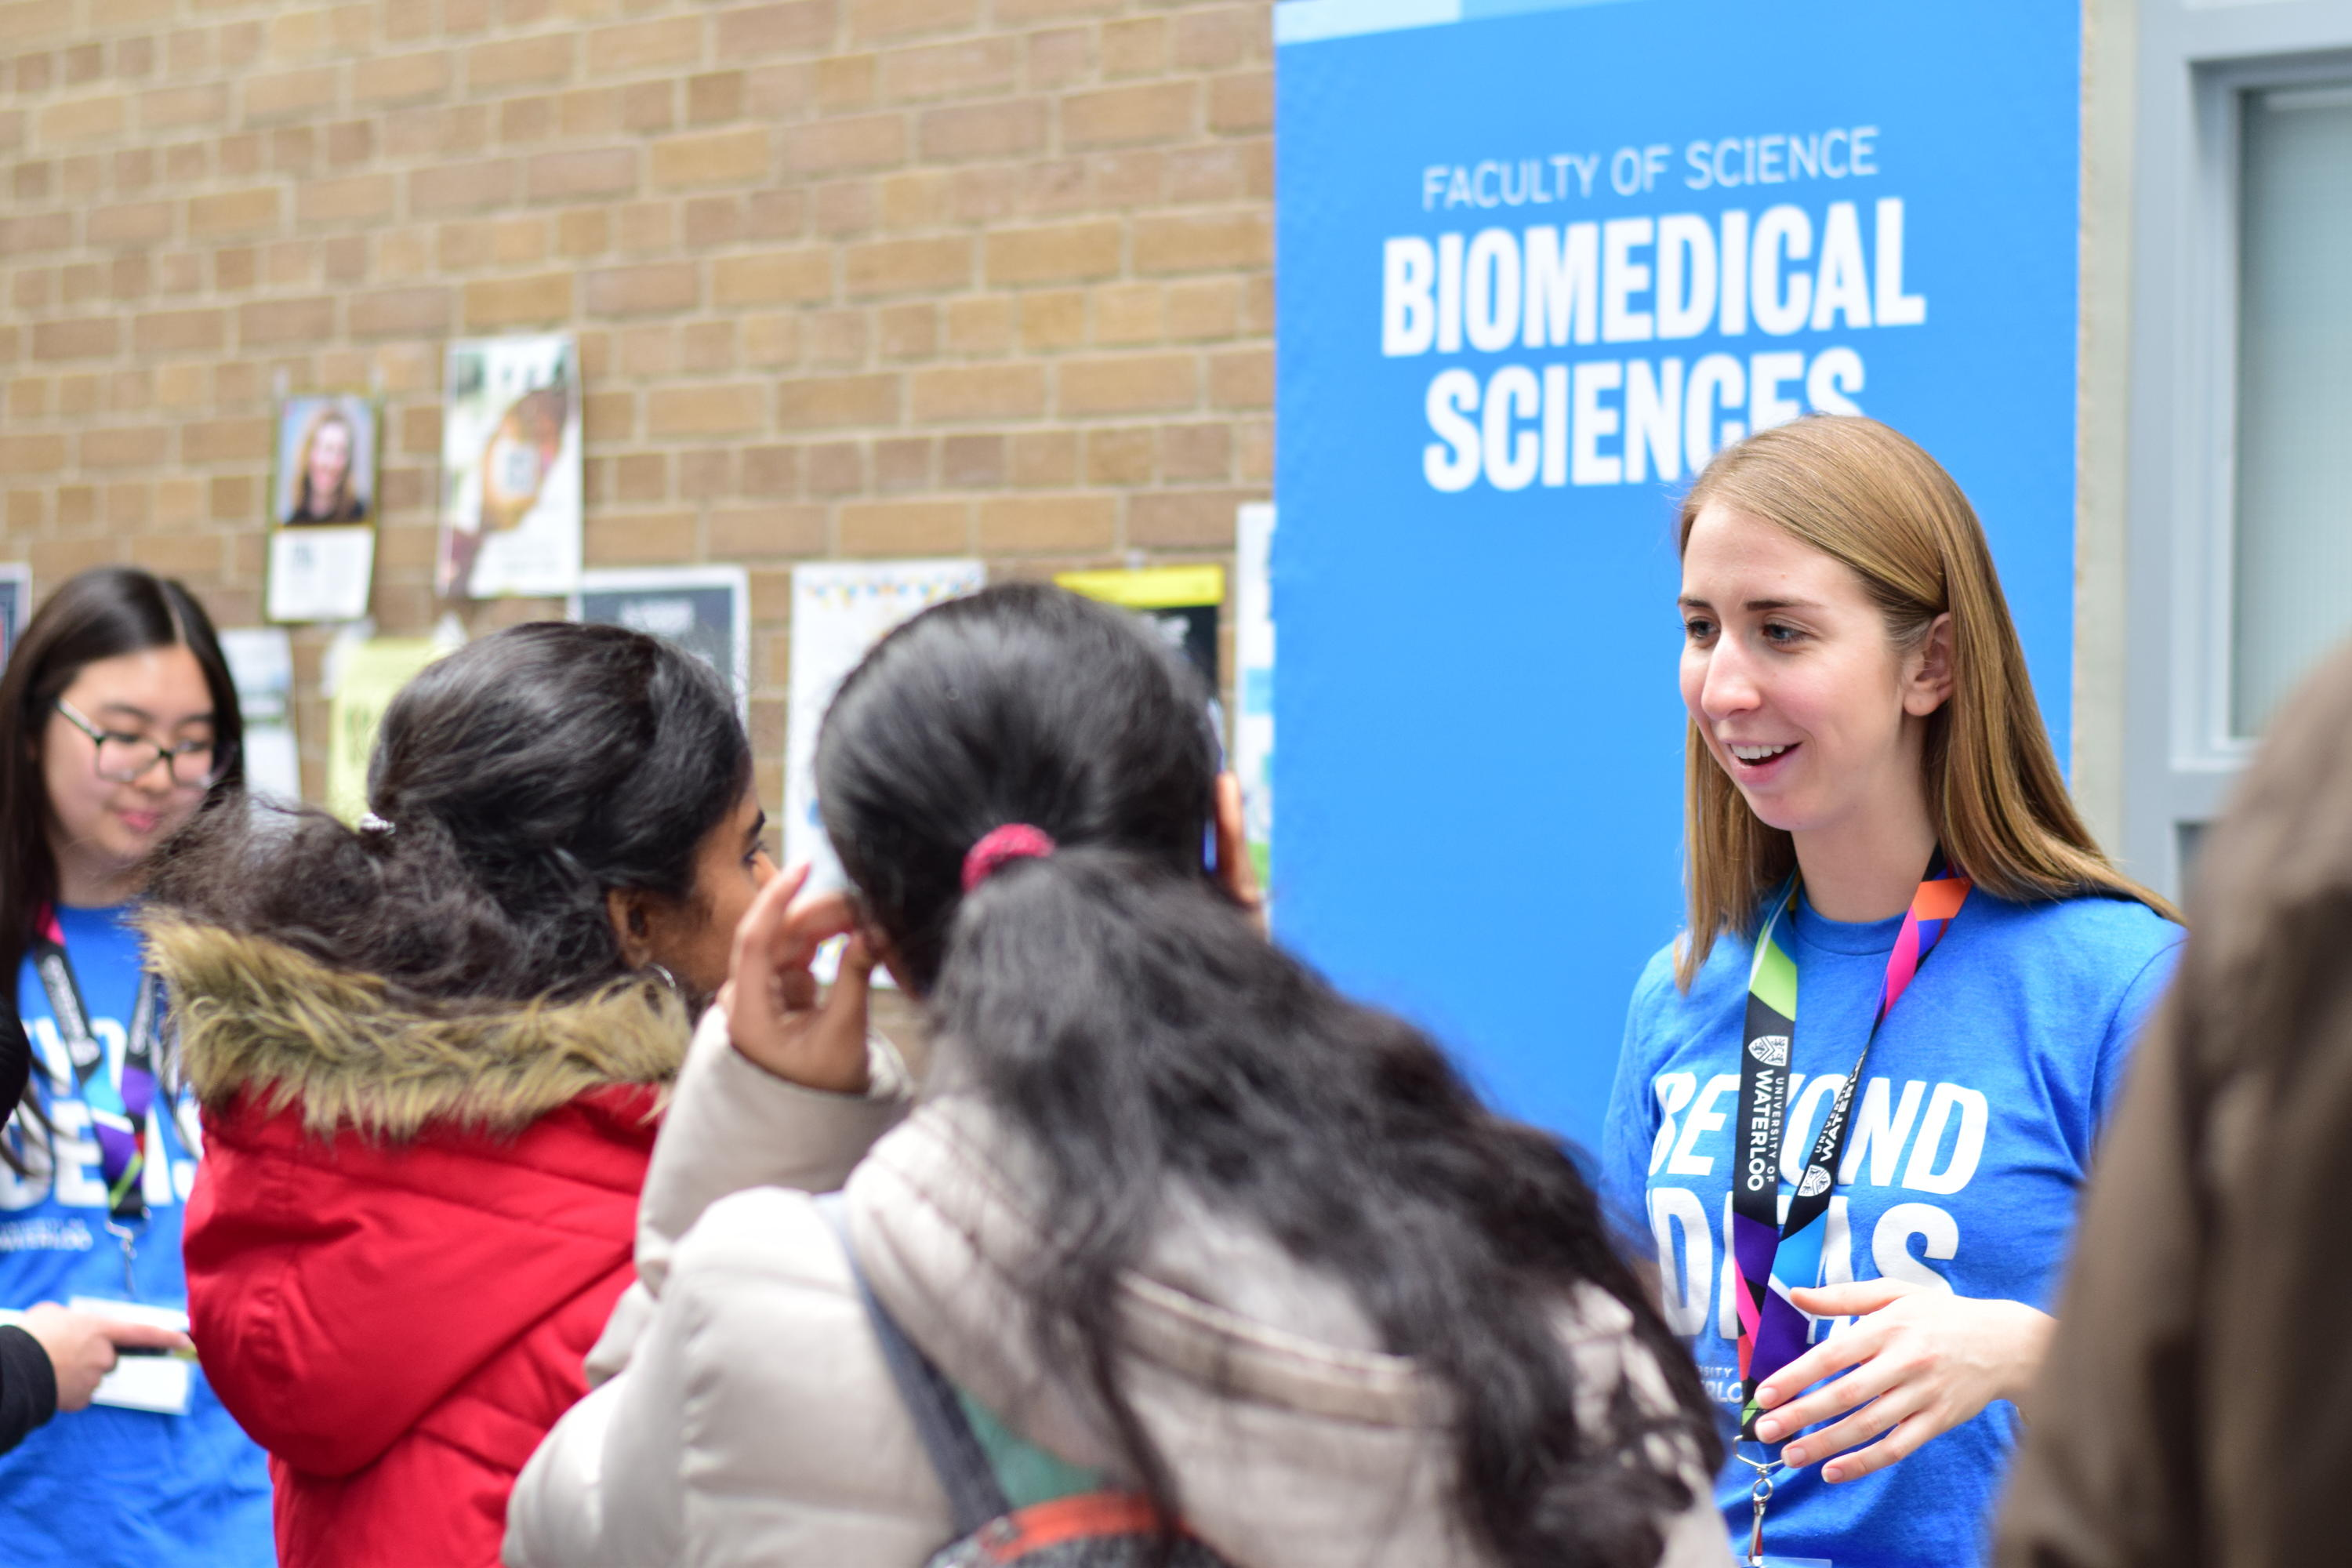 Science ambassador talking to prospective students at the fall open house.